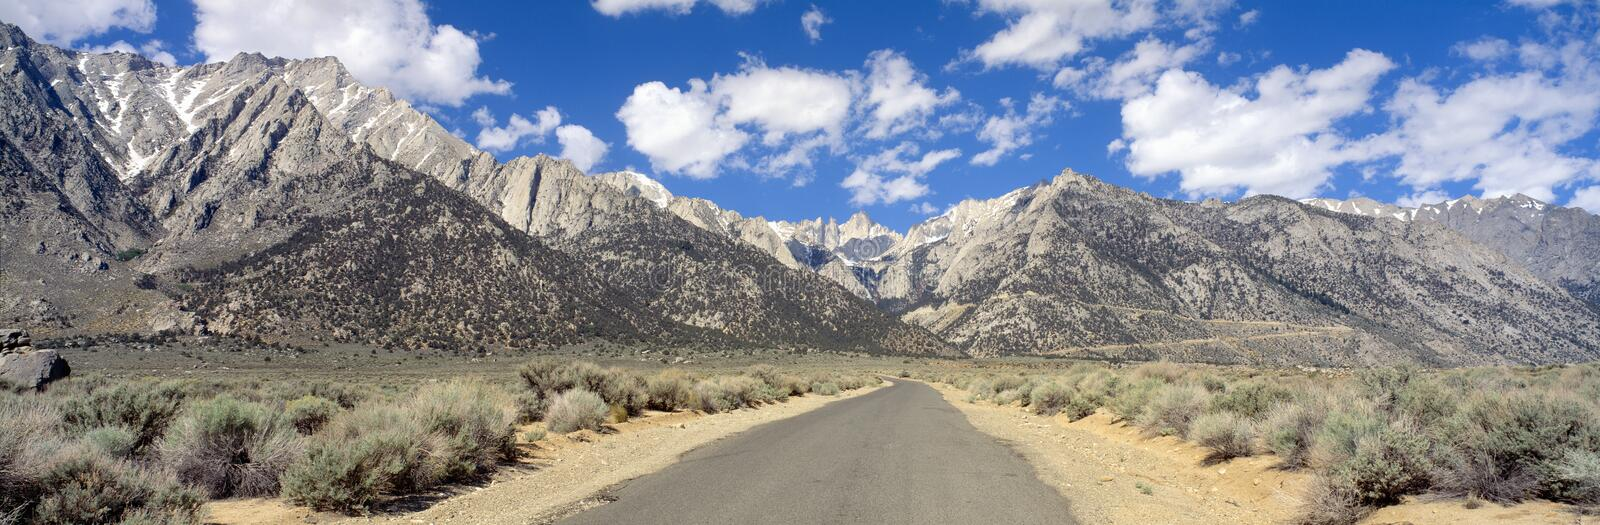 Route vers Mount Whitney images stock